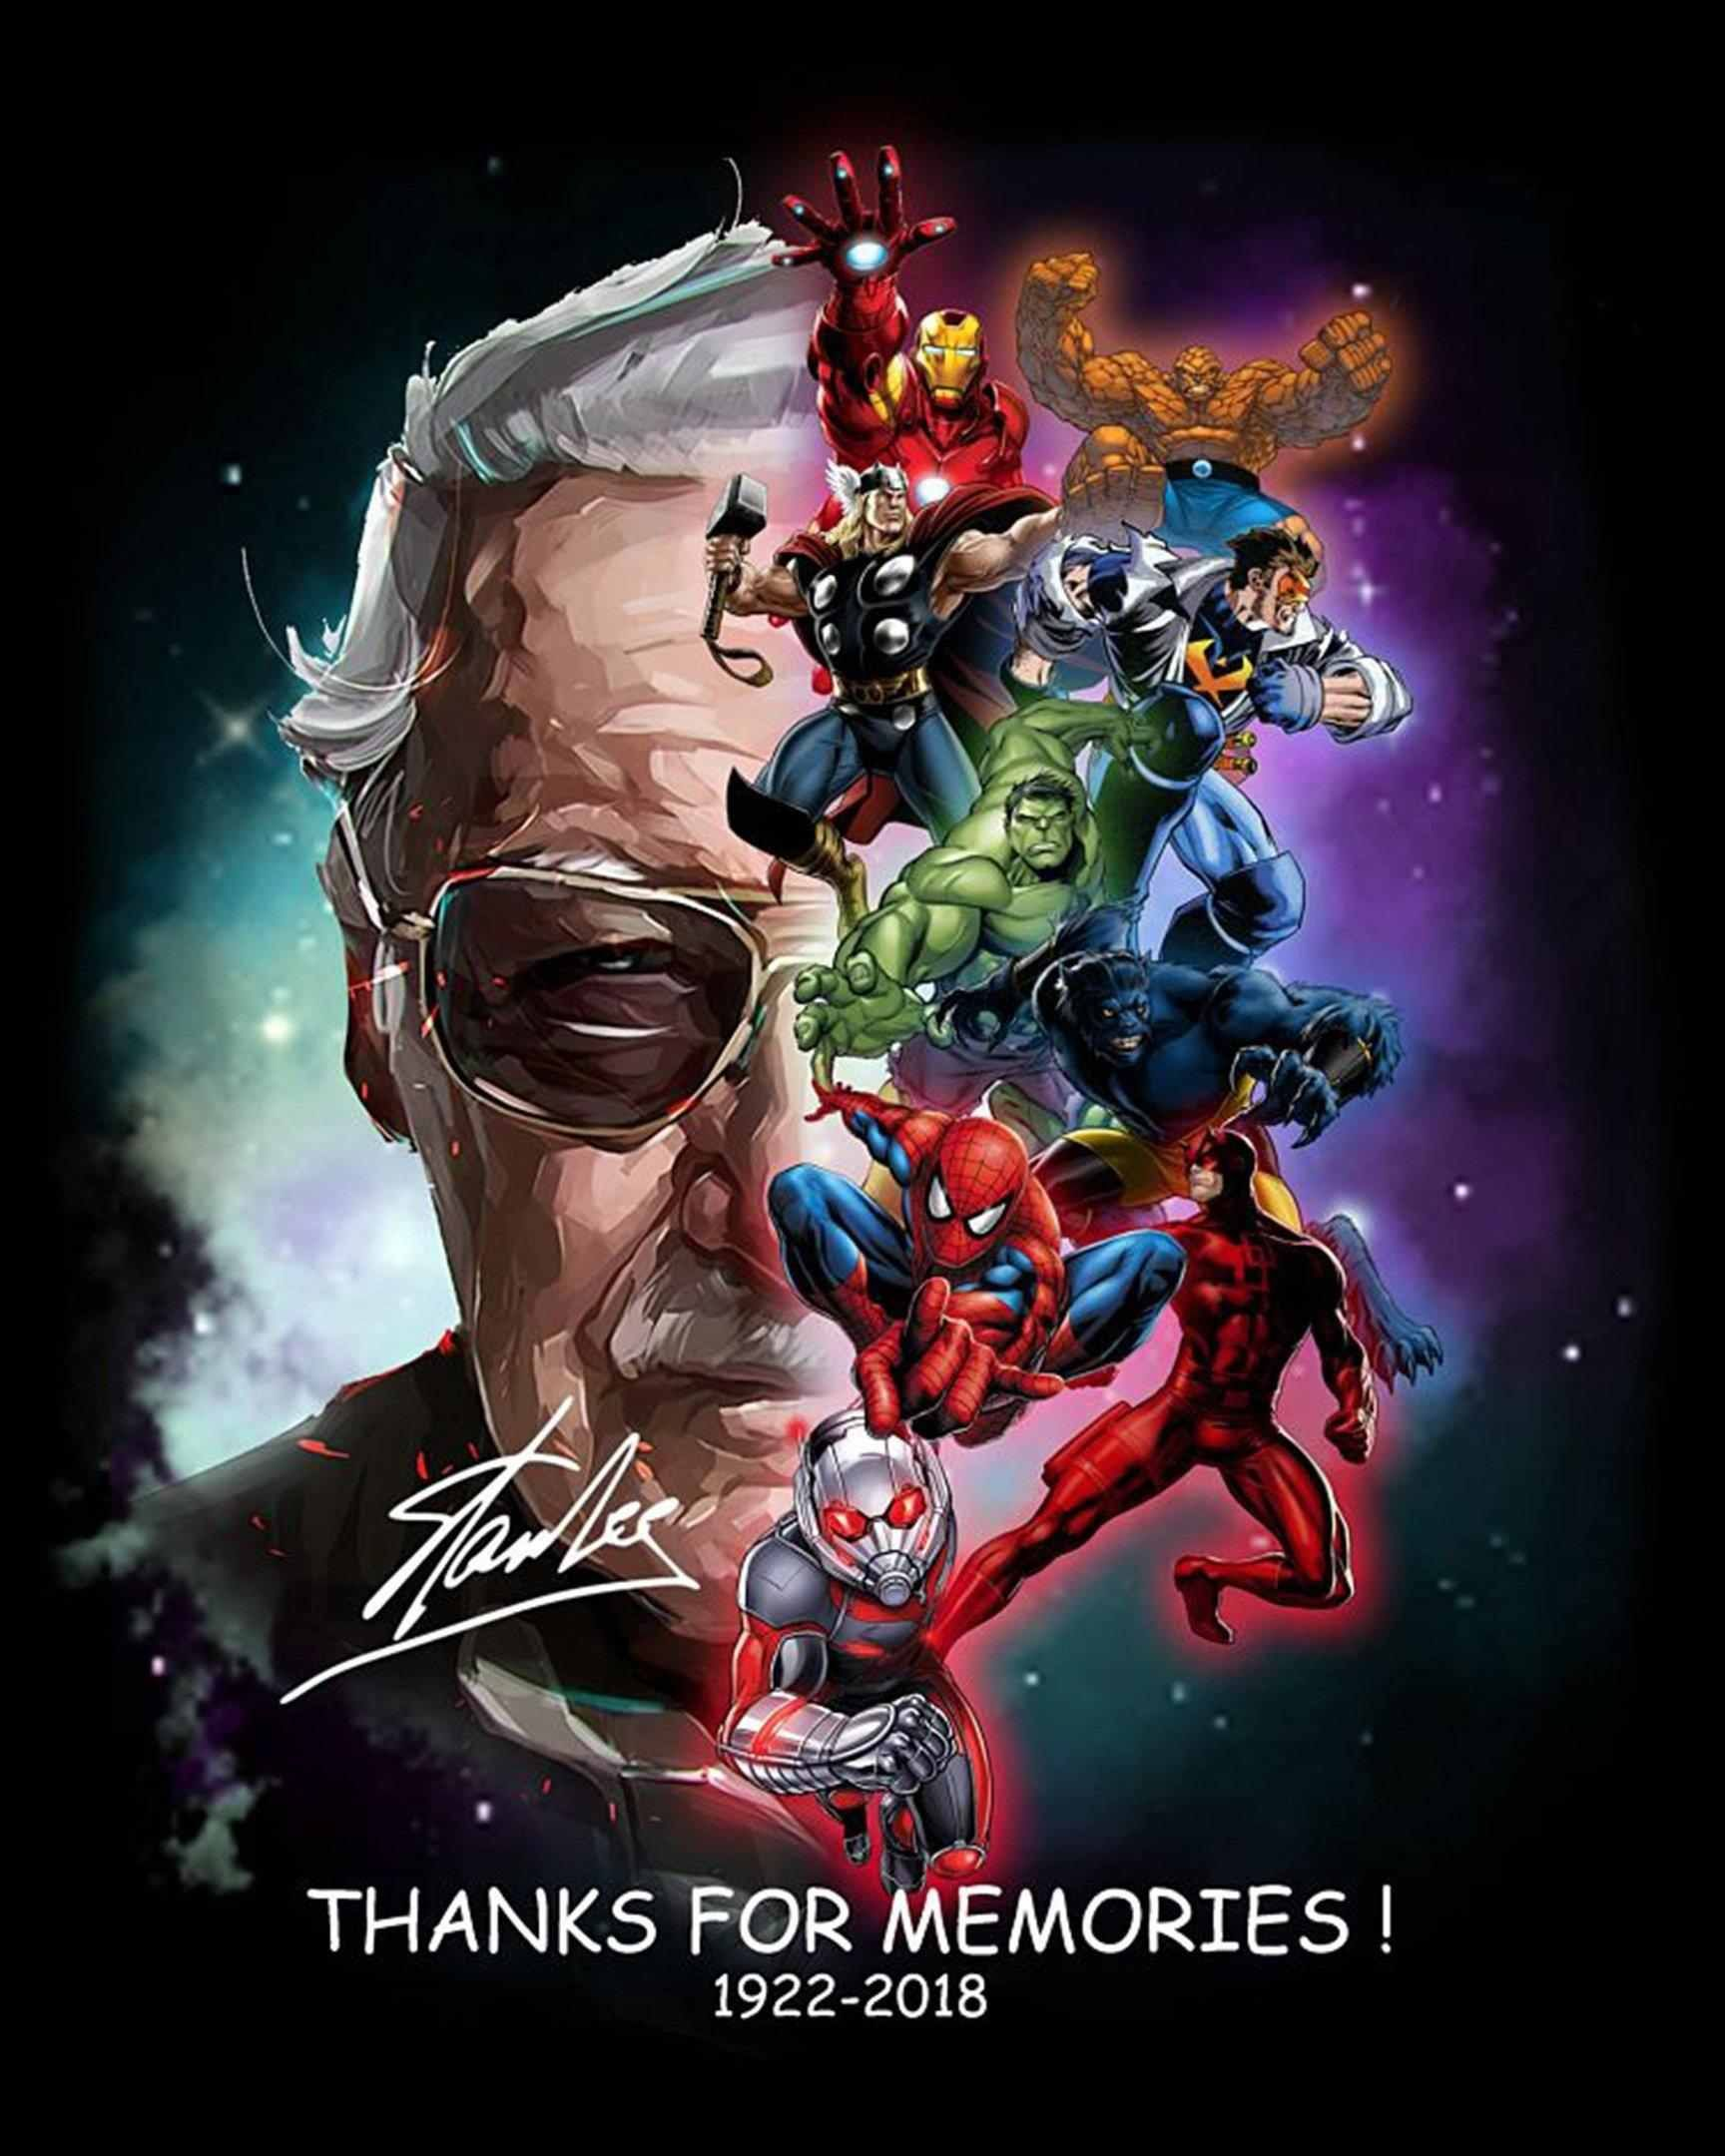 Stan Lee Memories We Will All Enjoy Poster And Canvas Avengers Poster Marvel Superheroes Marvel Characters